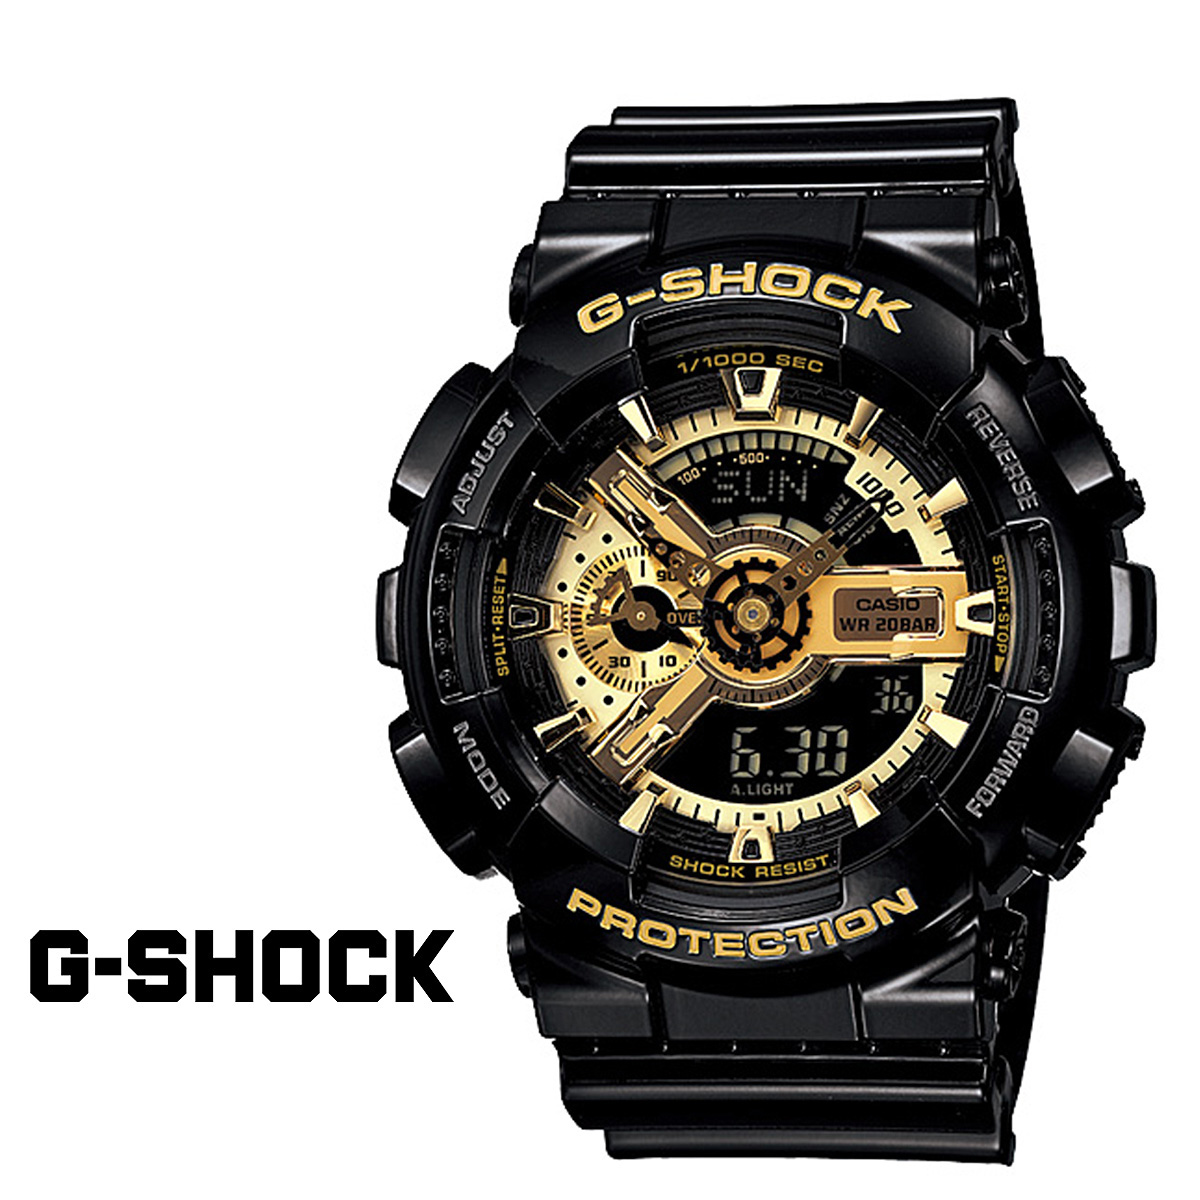 Casio CASIO g-shock GA-110GB-1AJF Watch Black×Gold Series men s women s  watches 48ac9c28e0